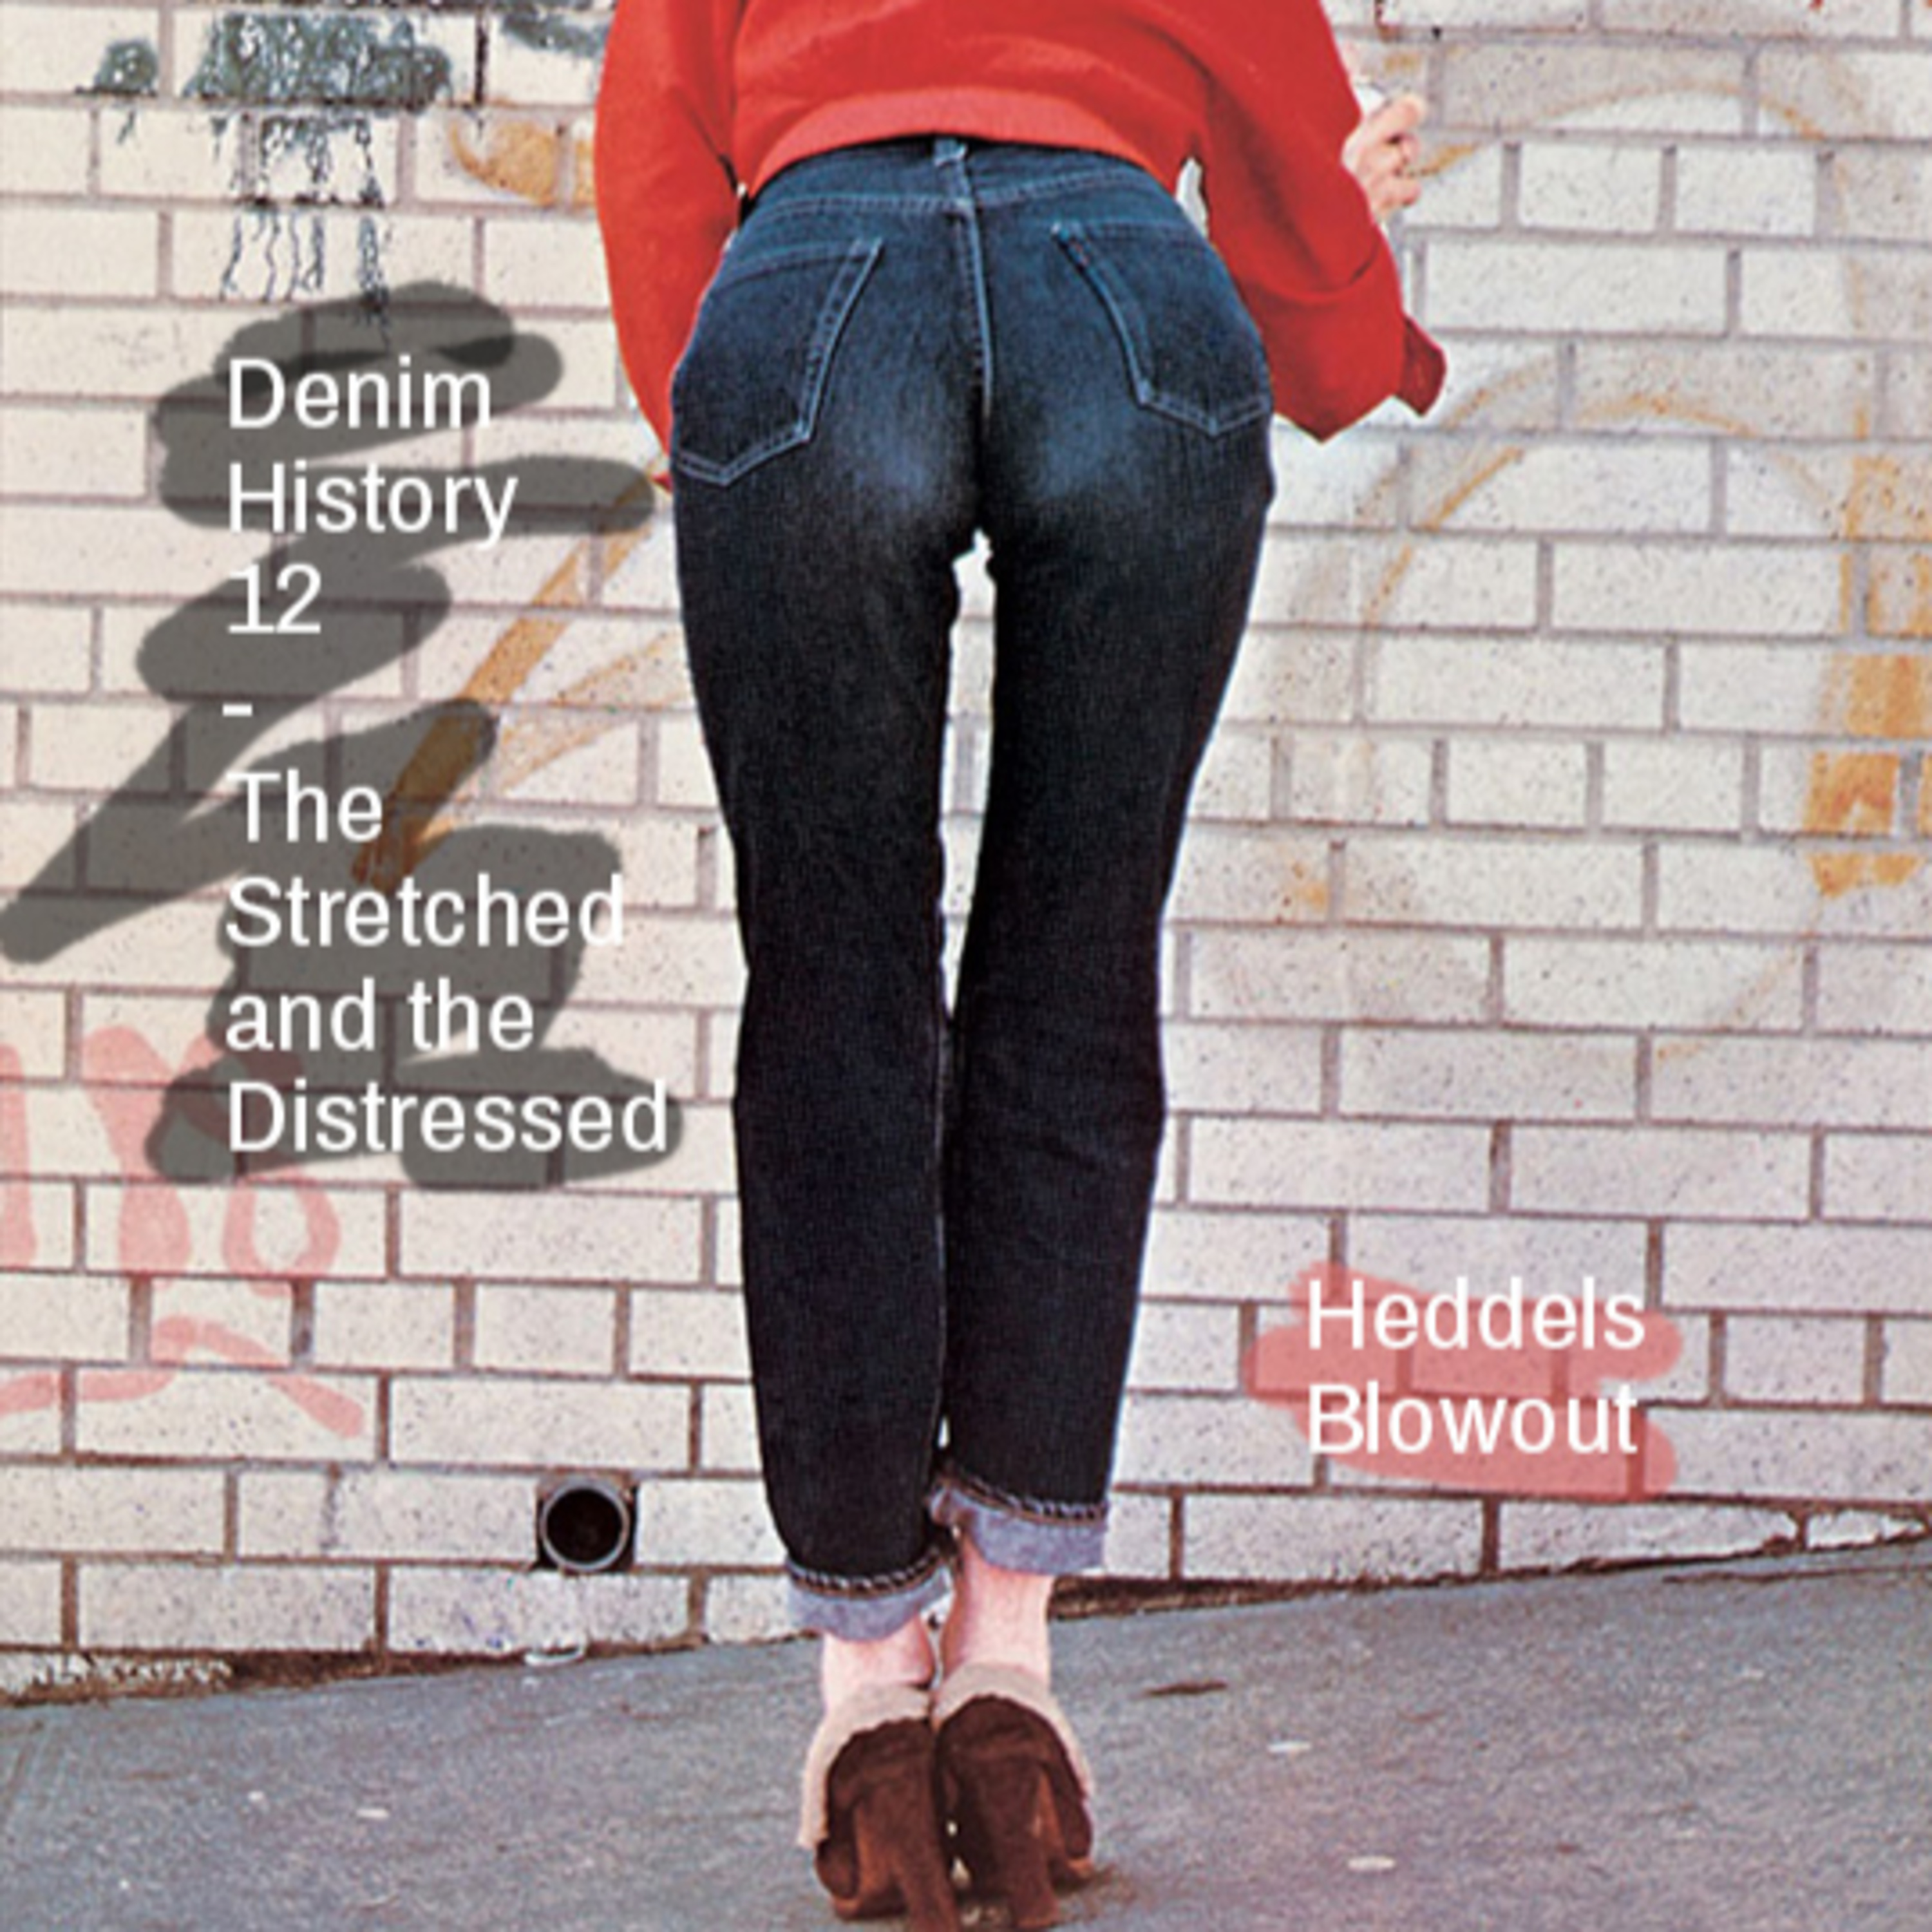 25 - Denim History pt. 12; The Stretched and the Distressed